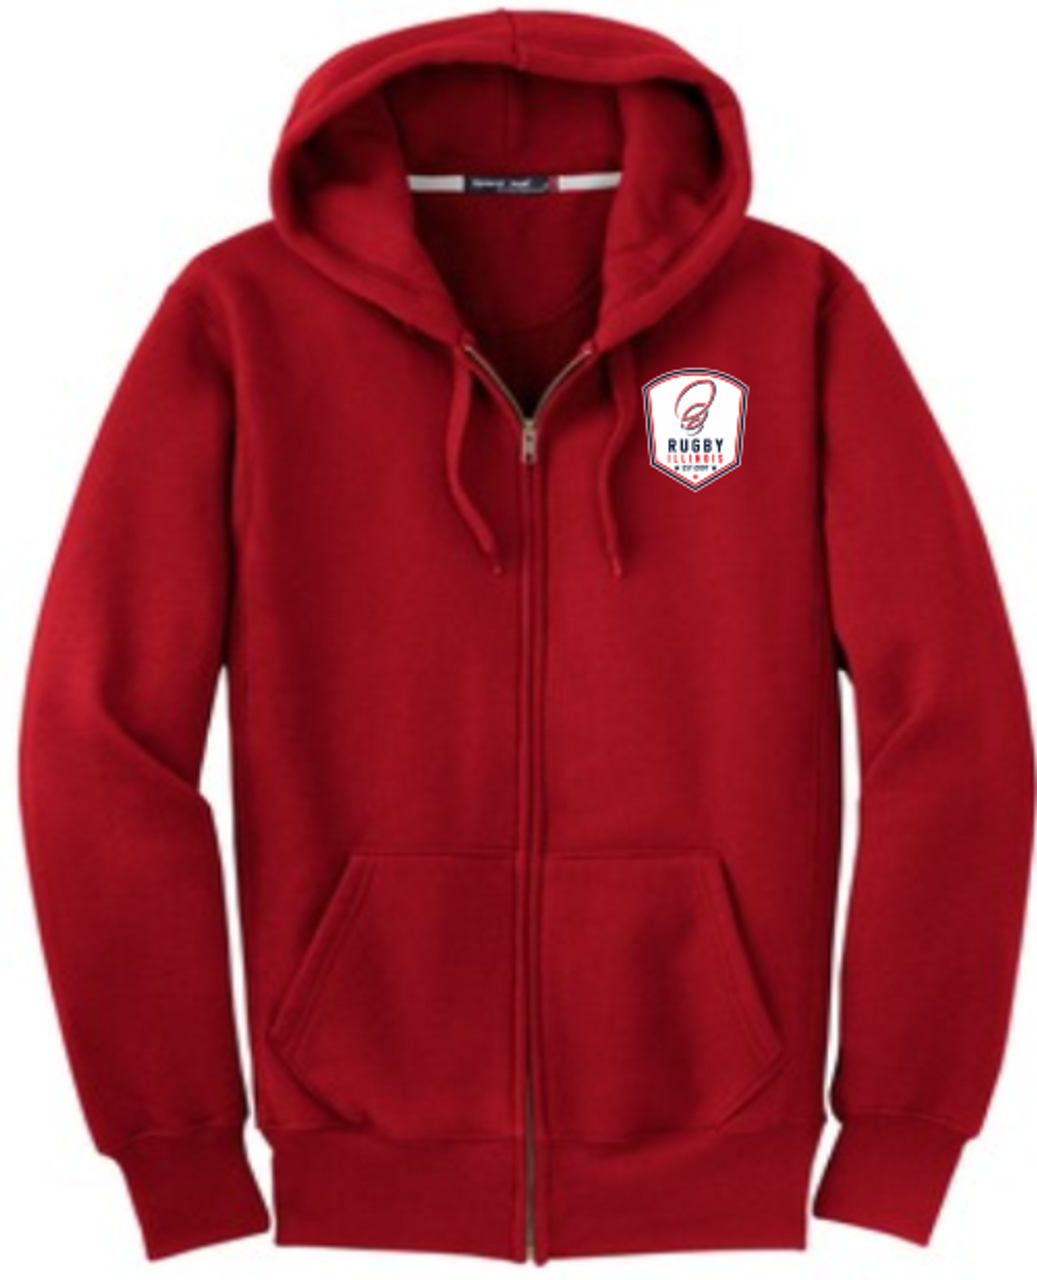 Rugby Illinois Super Heavyweight Full-Zip Hoodie, Red